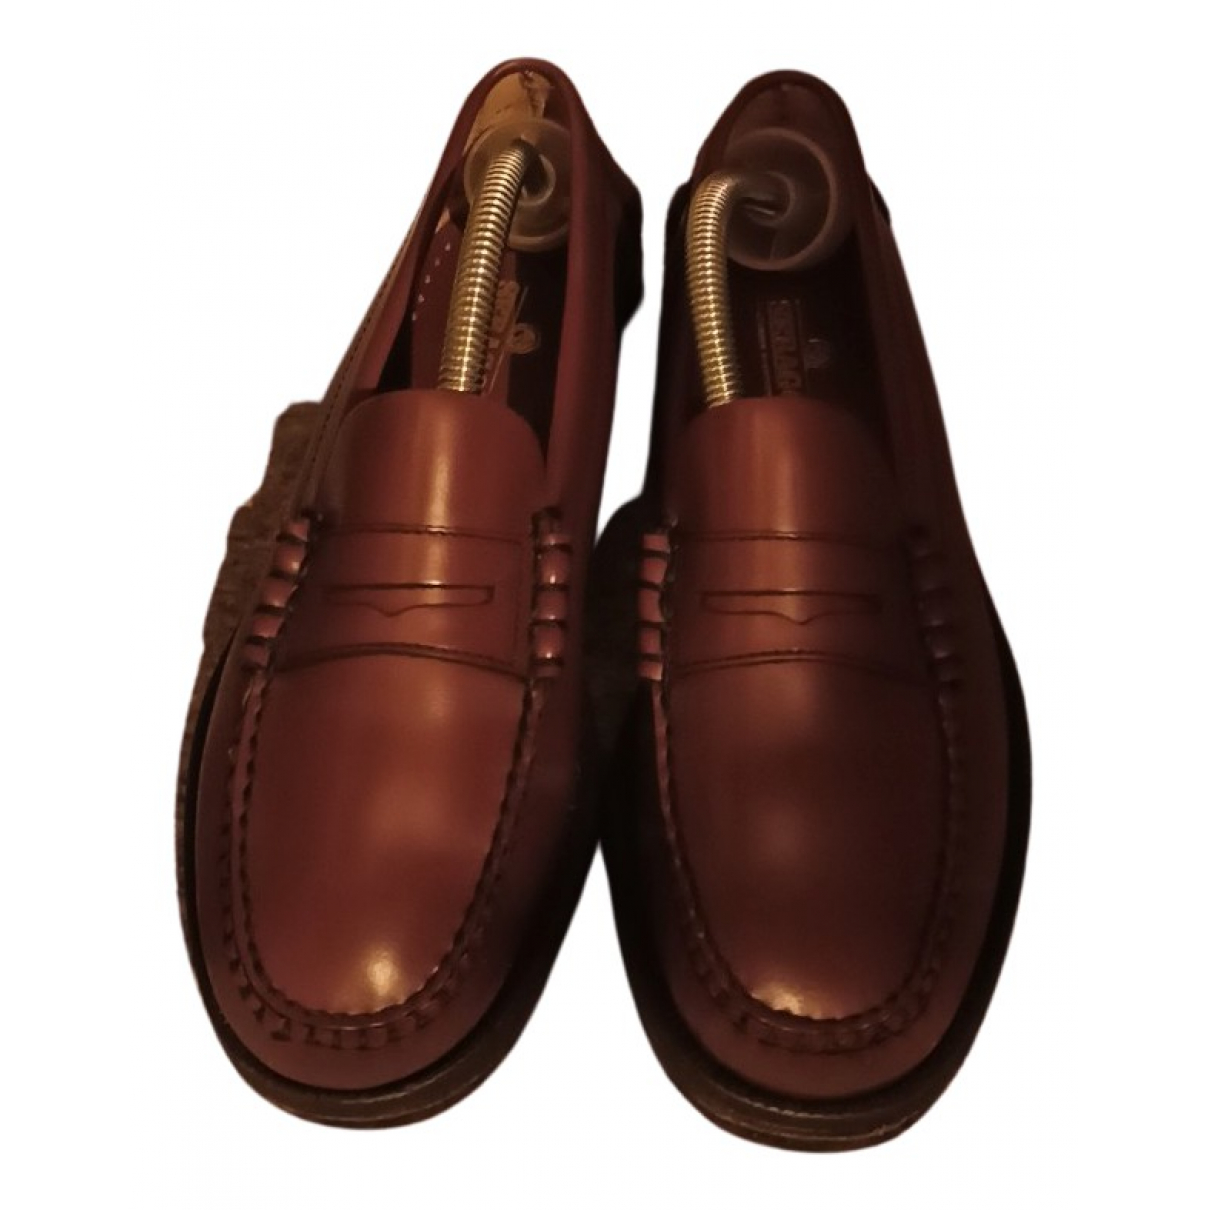 Sebago N Camel Leather Flats for Women 37 EU